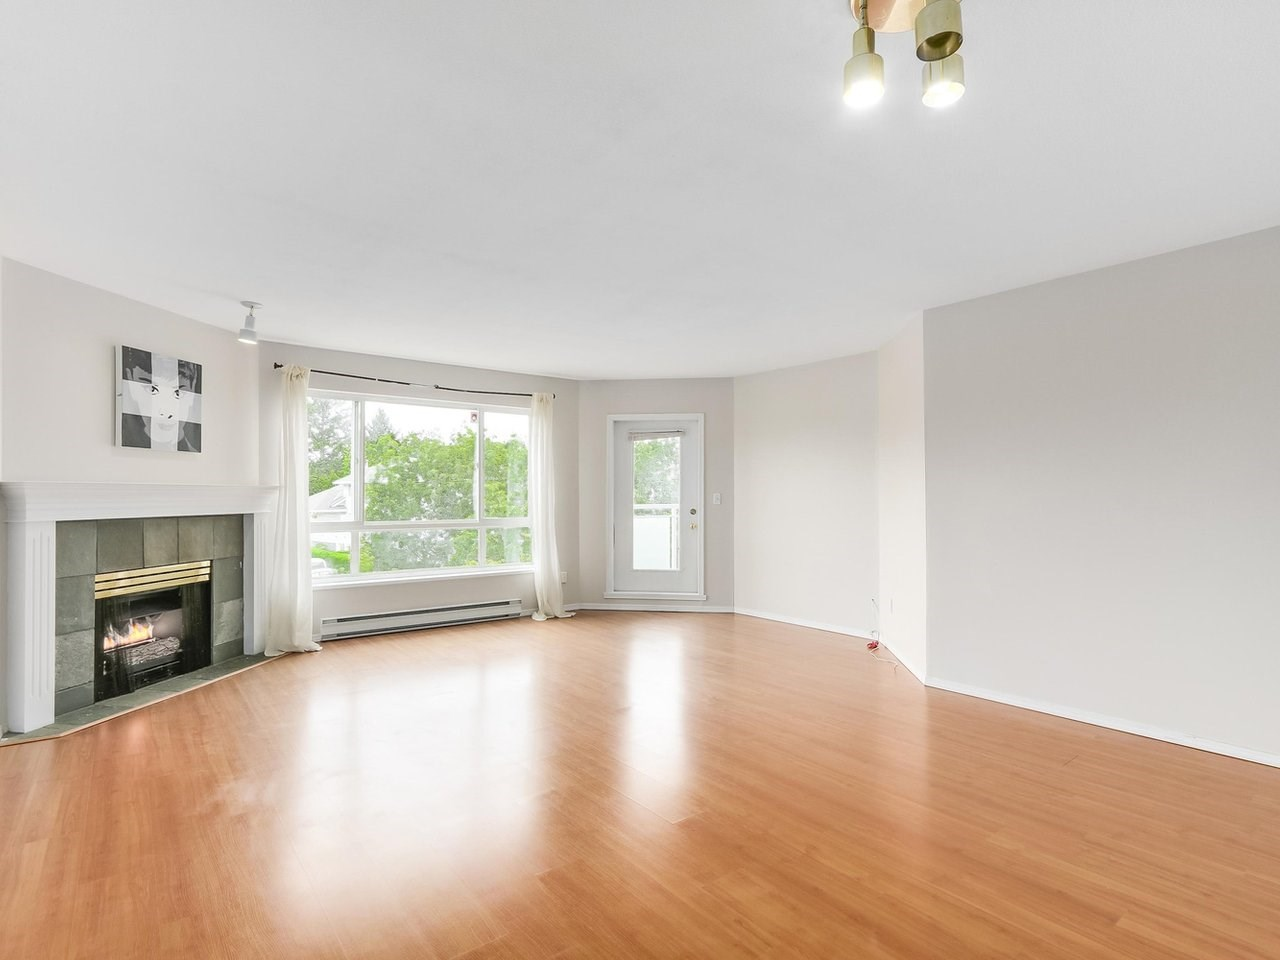 Condo Apartment at 308 13680 84 AVENUE, Unit 308, Surrey, British Columbia. Image 1